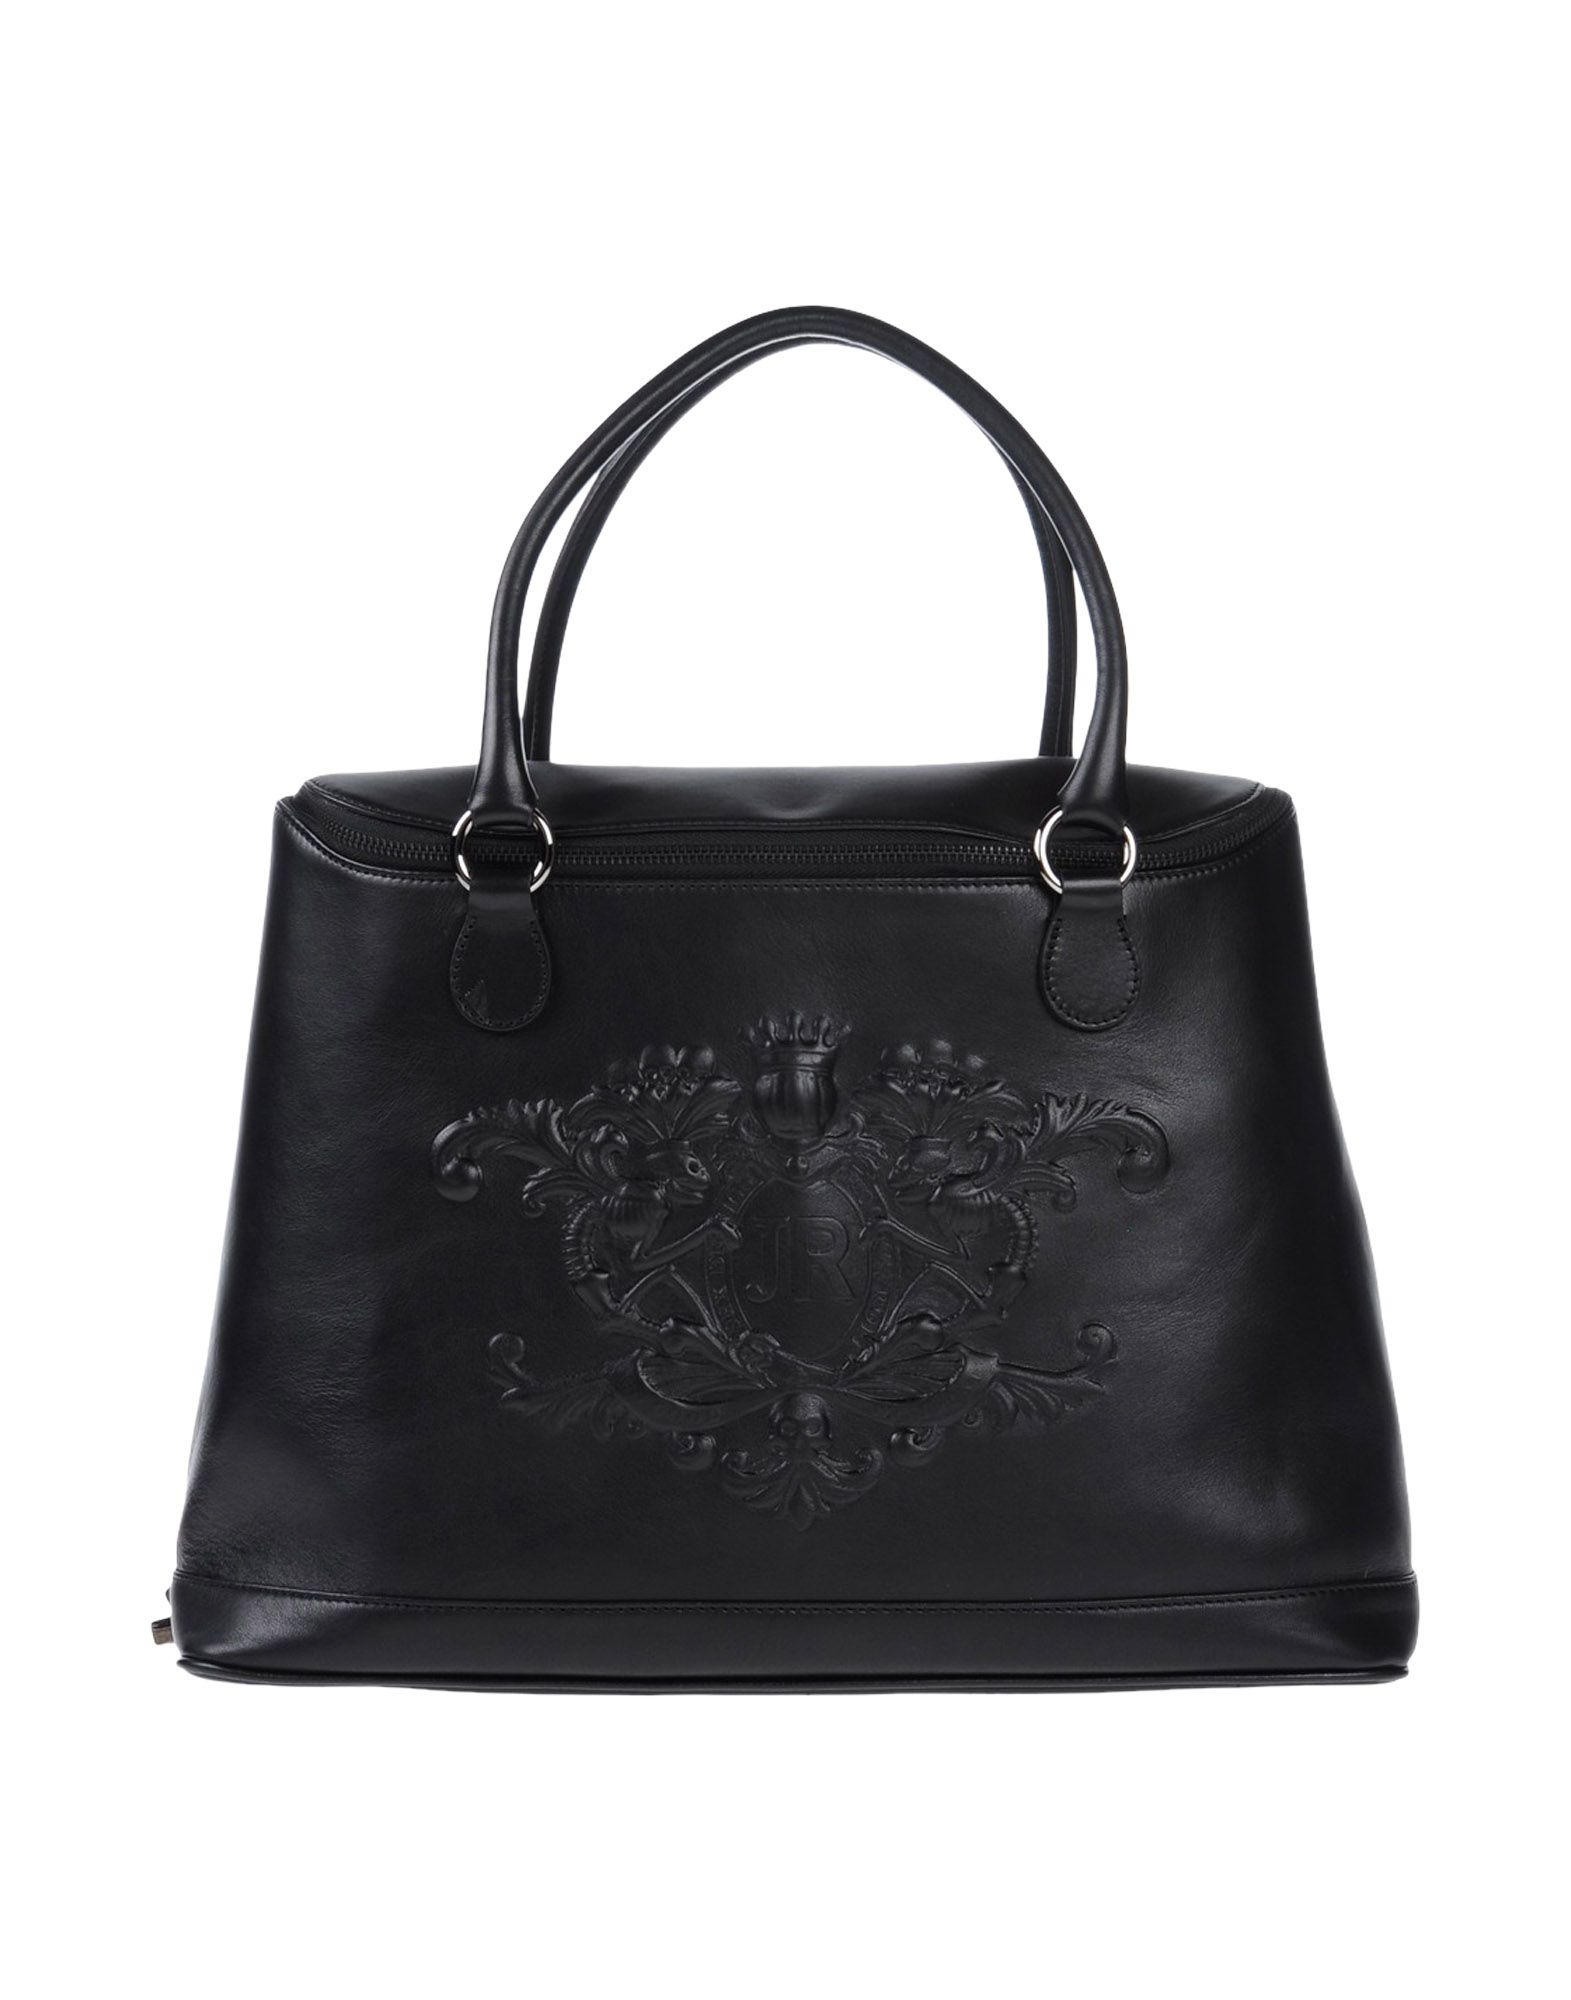 John richmond Handbag in Black